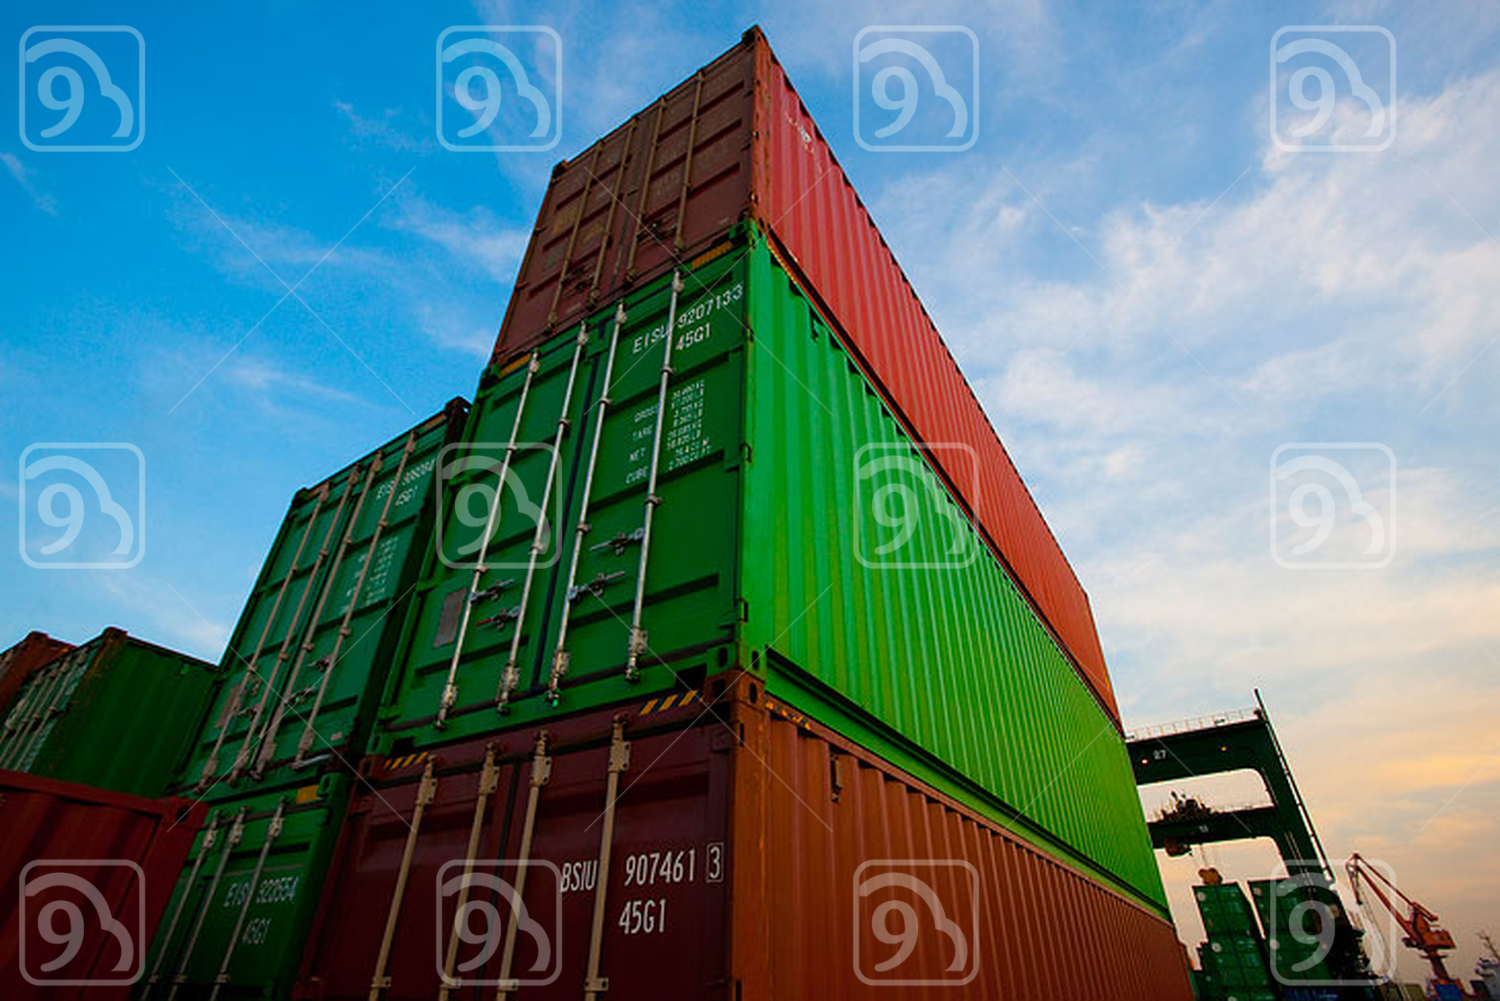 Cargo containers at dusk